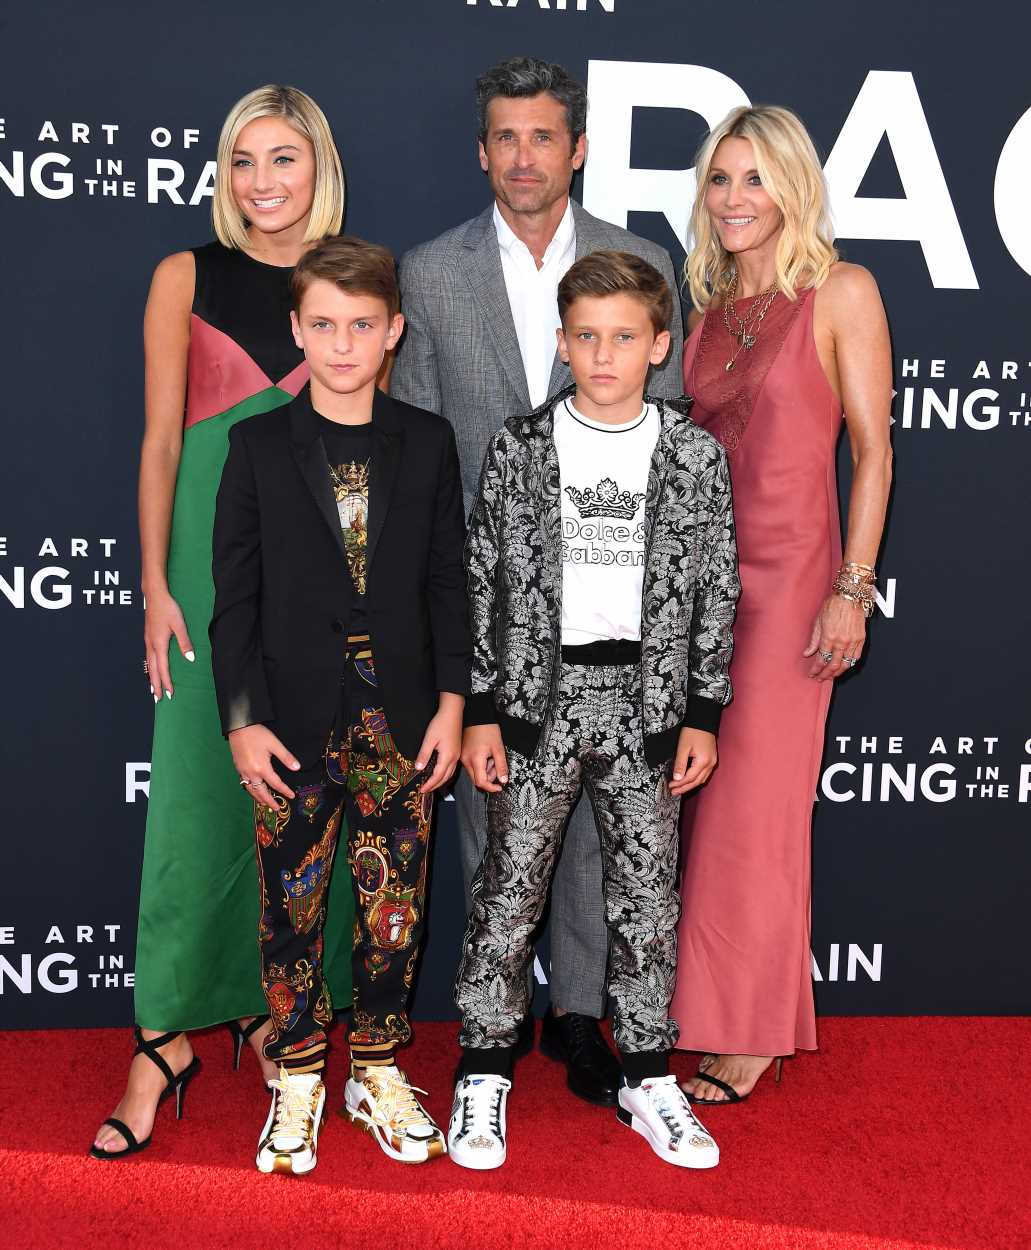 Patrick Dempsey and his gorgeous family made a rare public appearance together and we're not okay